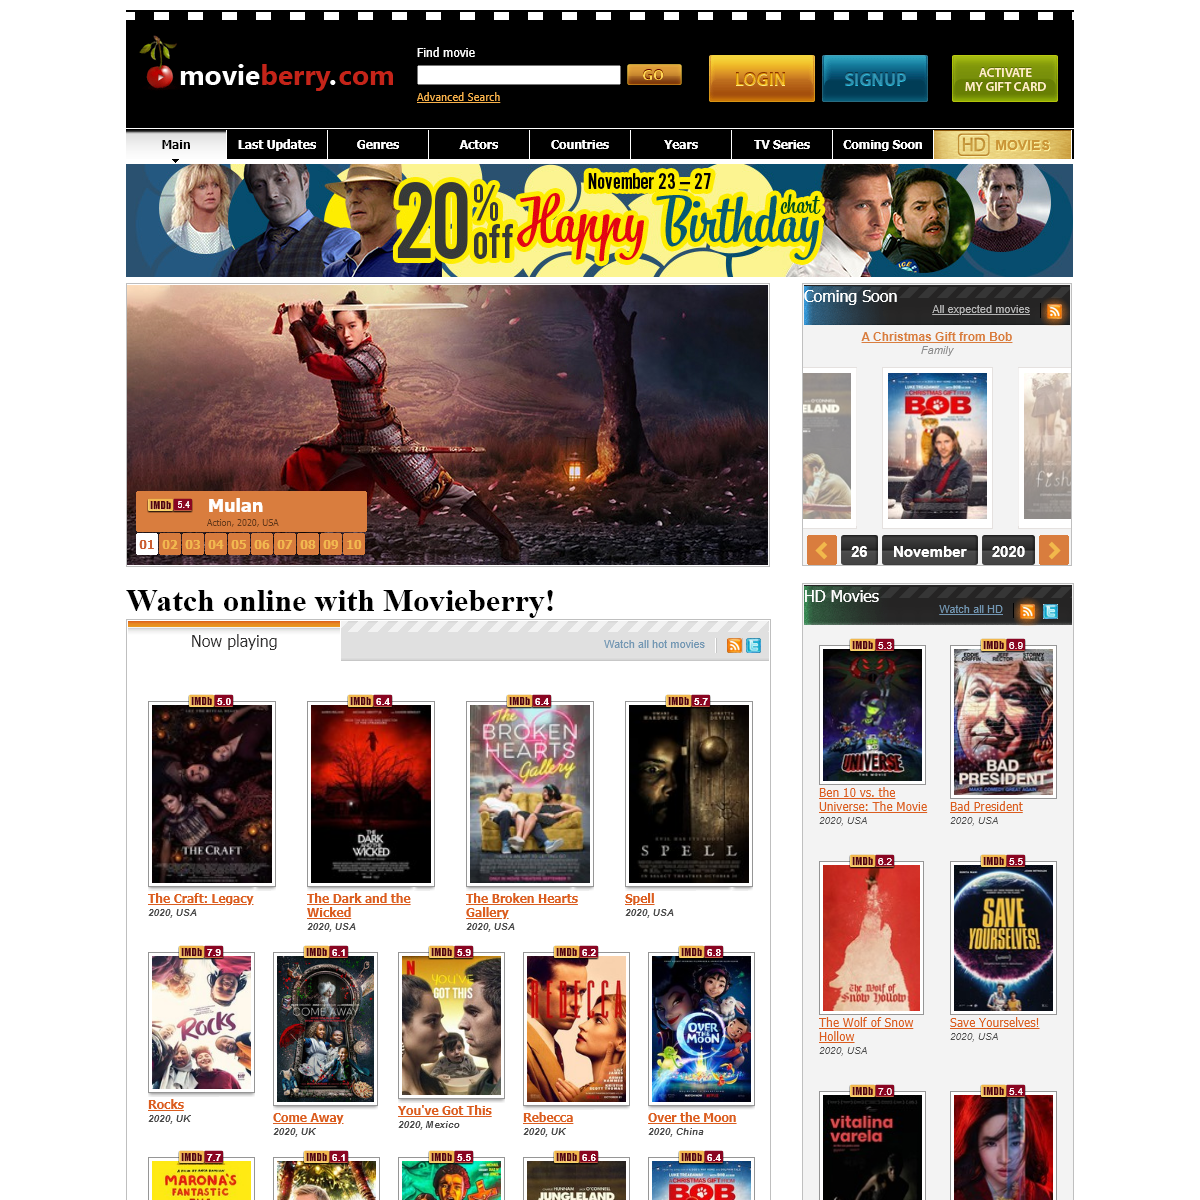 Watch online, download and stream the best movies on Movieberry.com